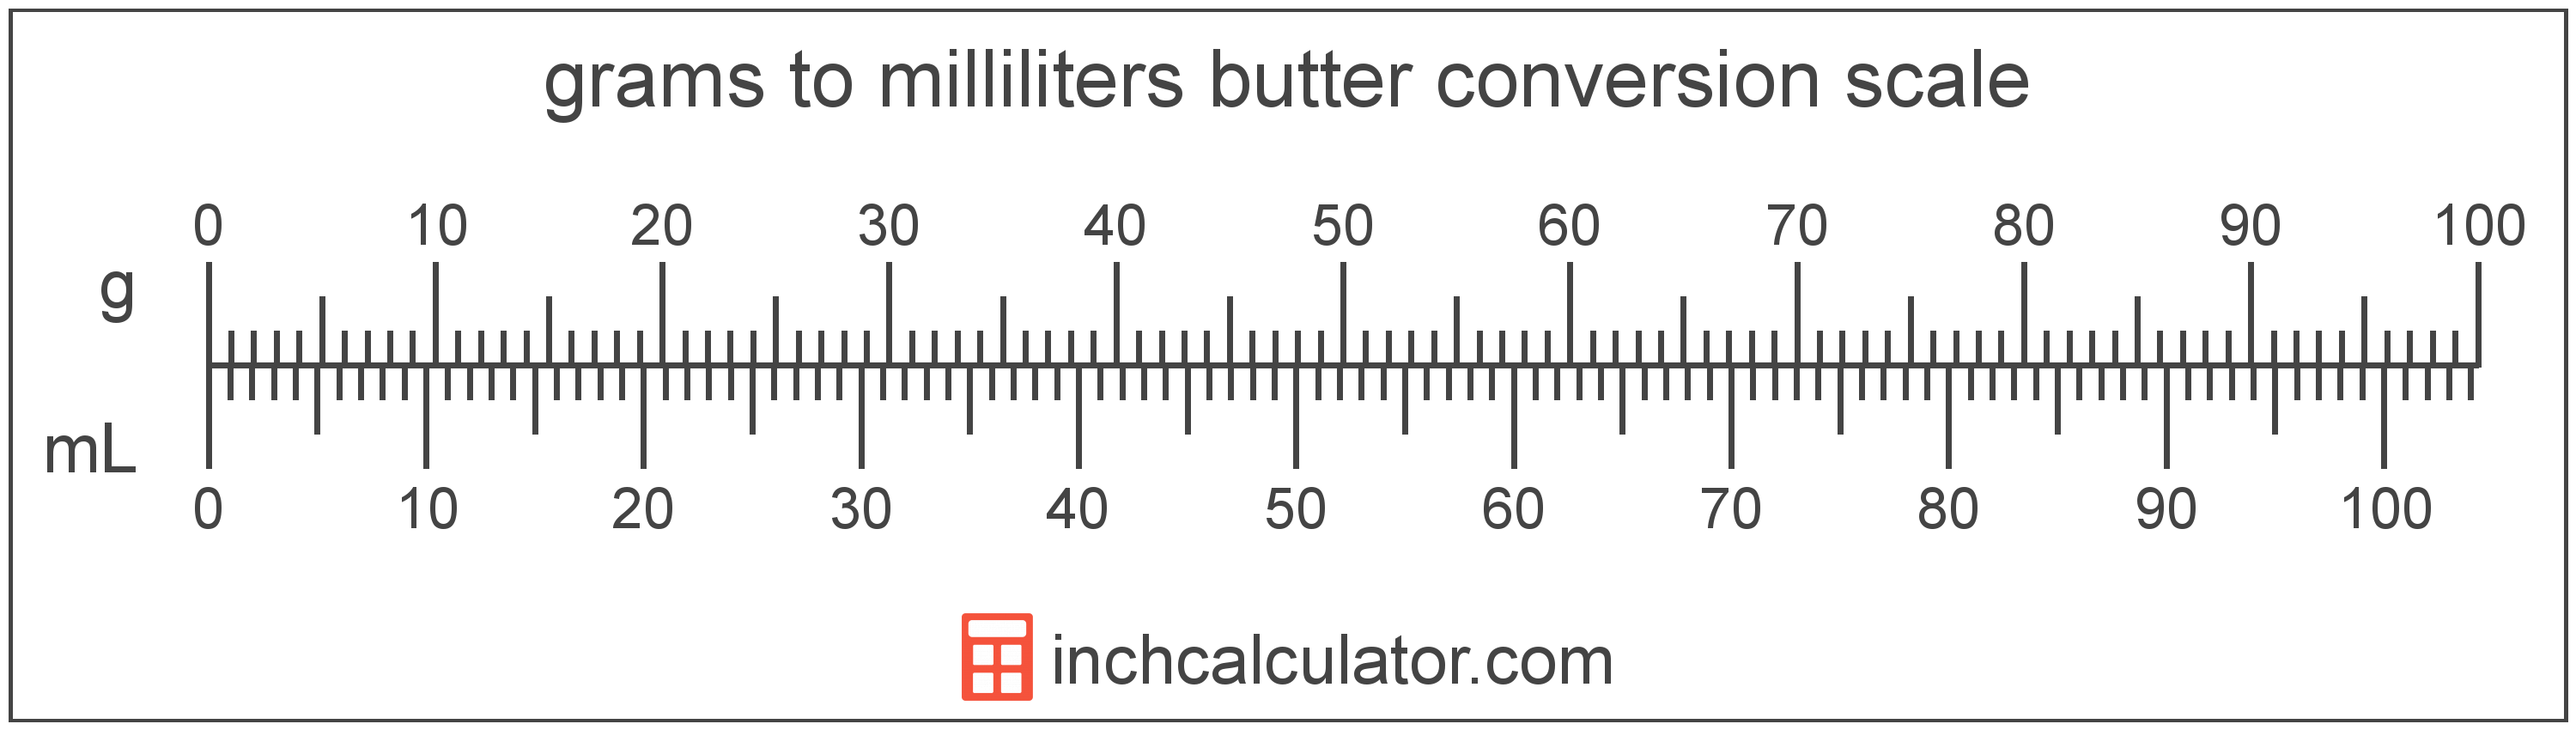 conversion scale showing grams and equivalent milliliters butter values